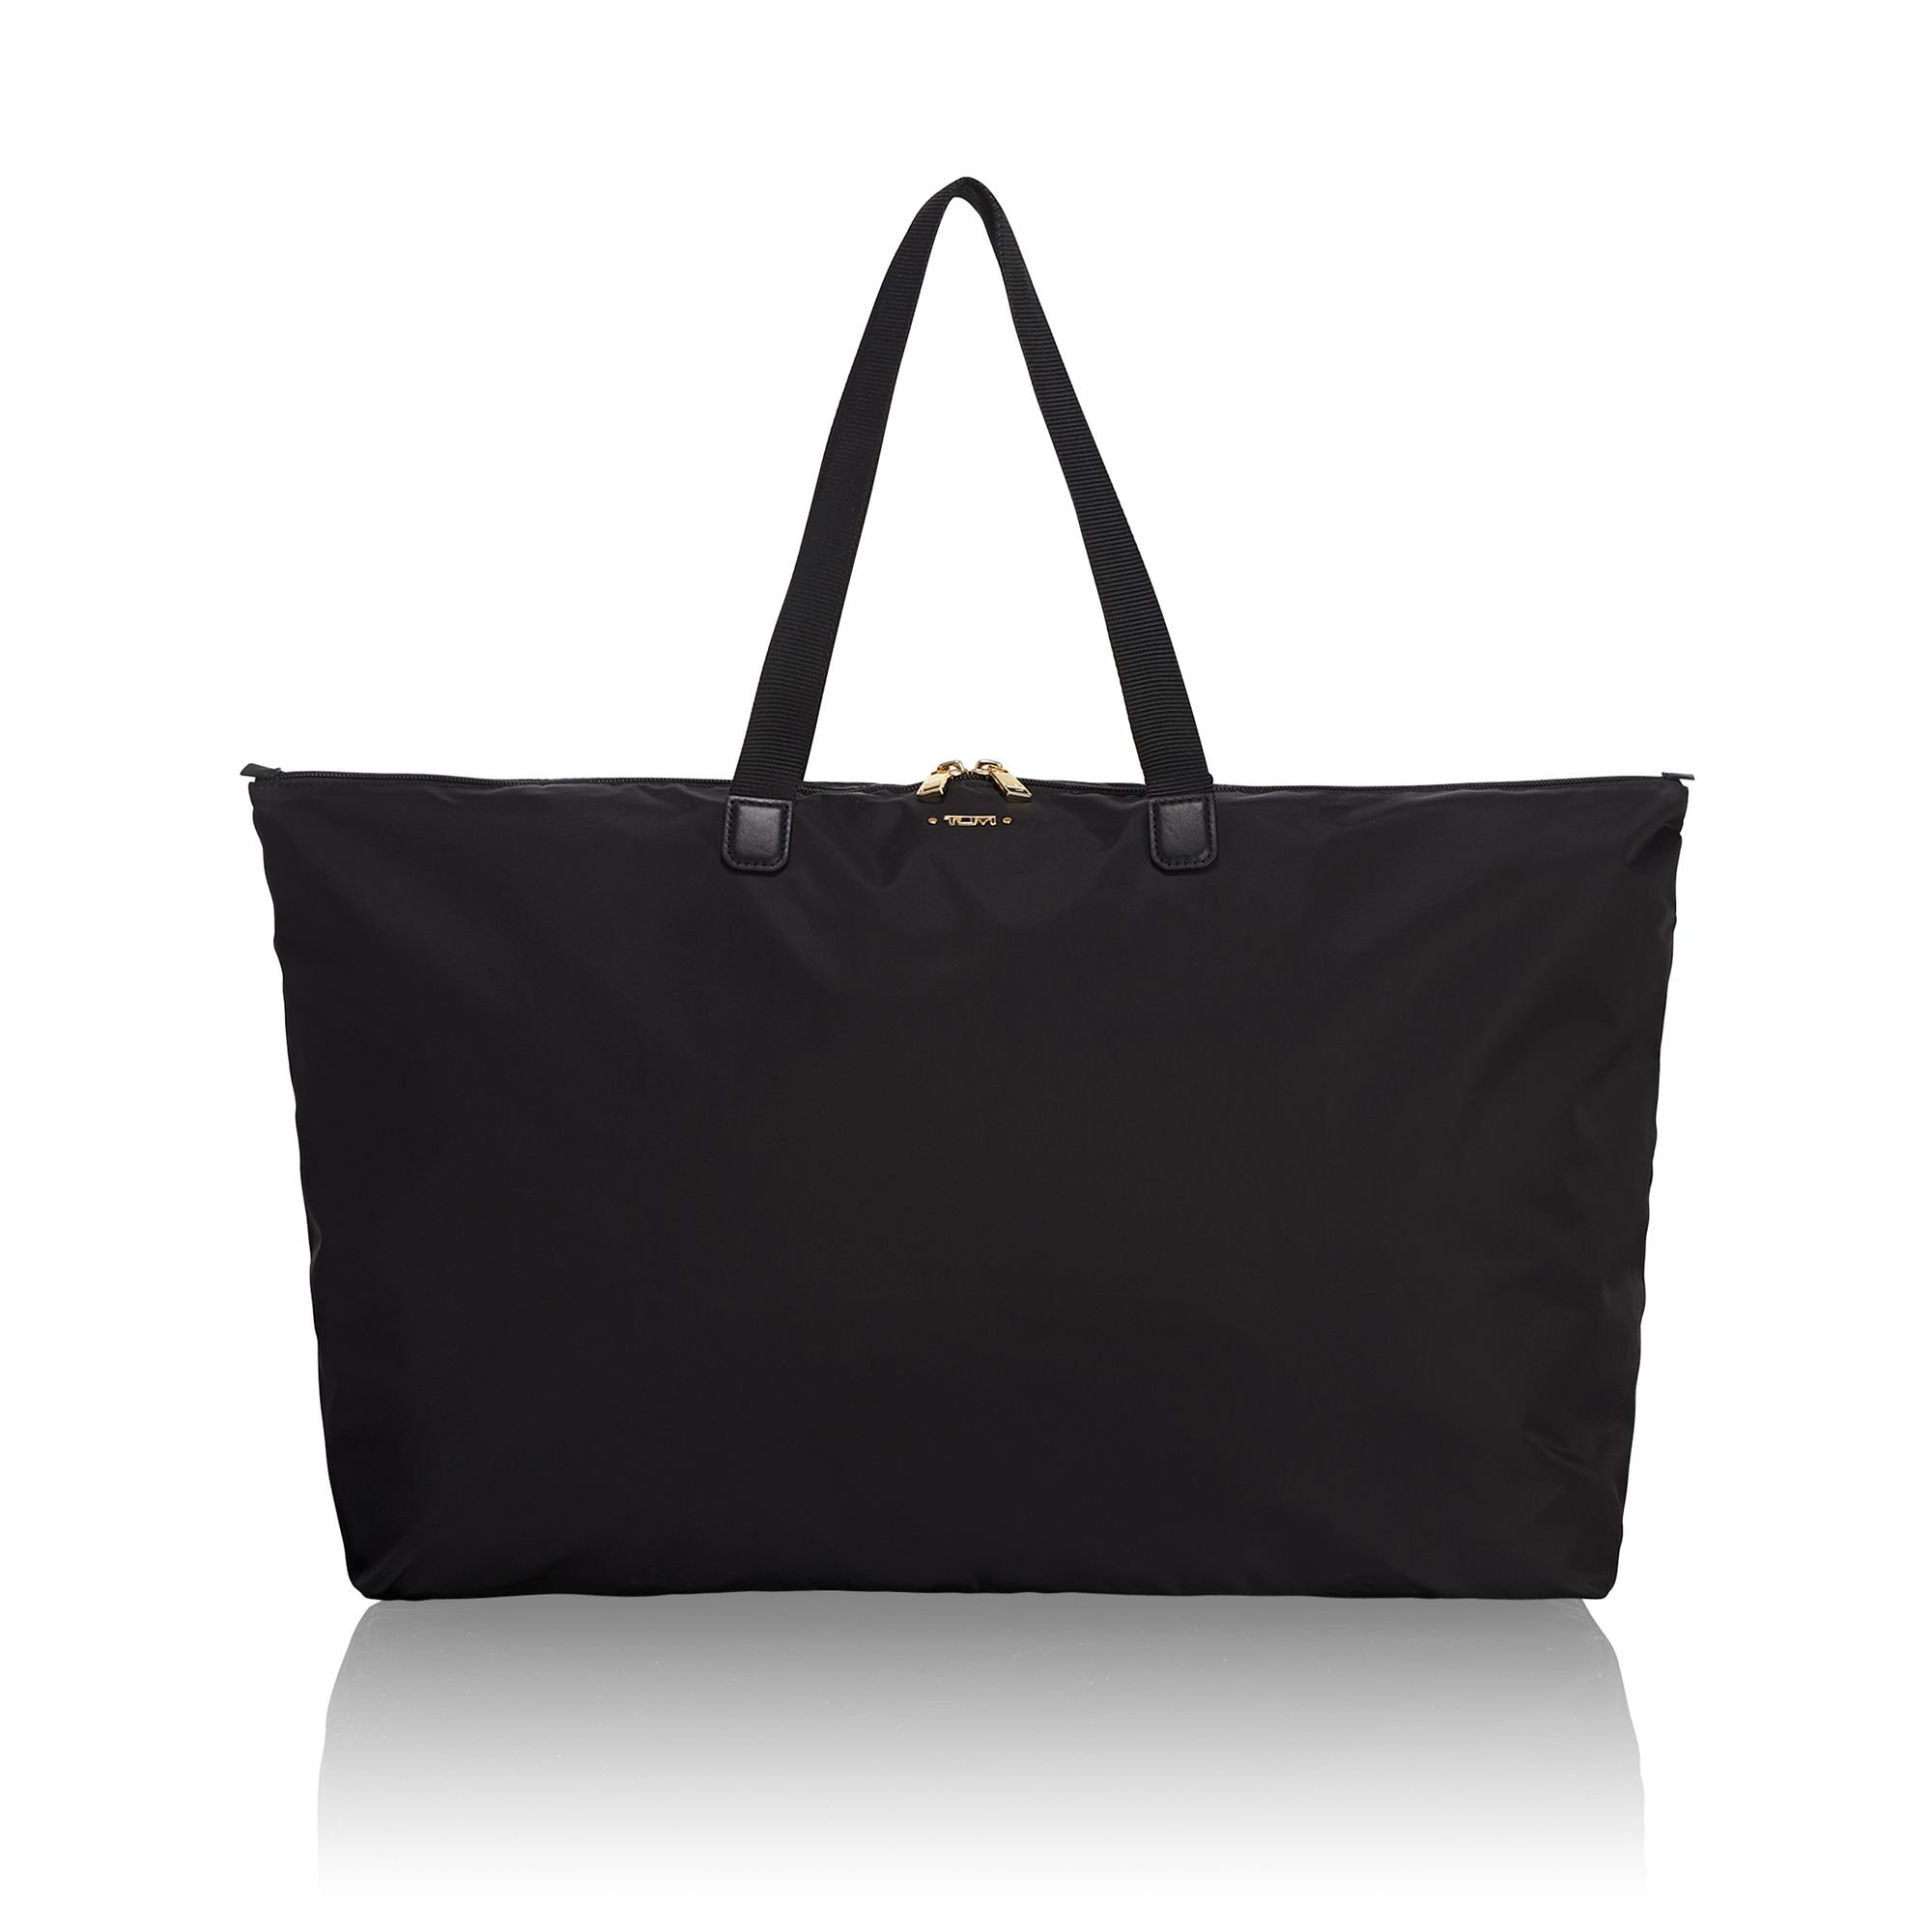 Tumi Women's Voyageur Just in Case Tote Travel, Black, One Size